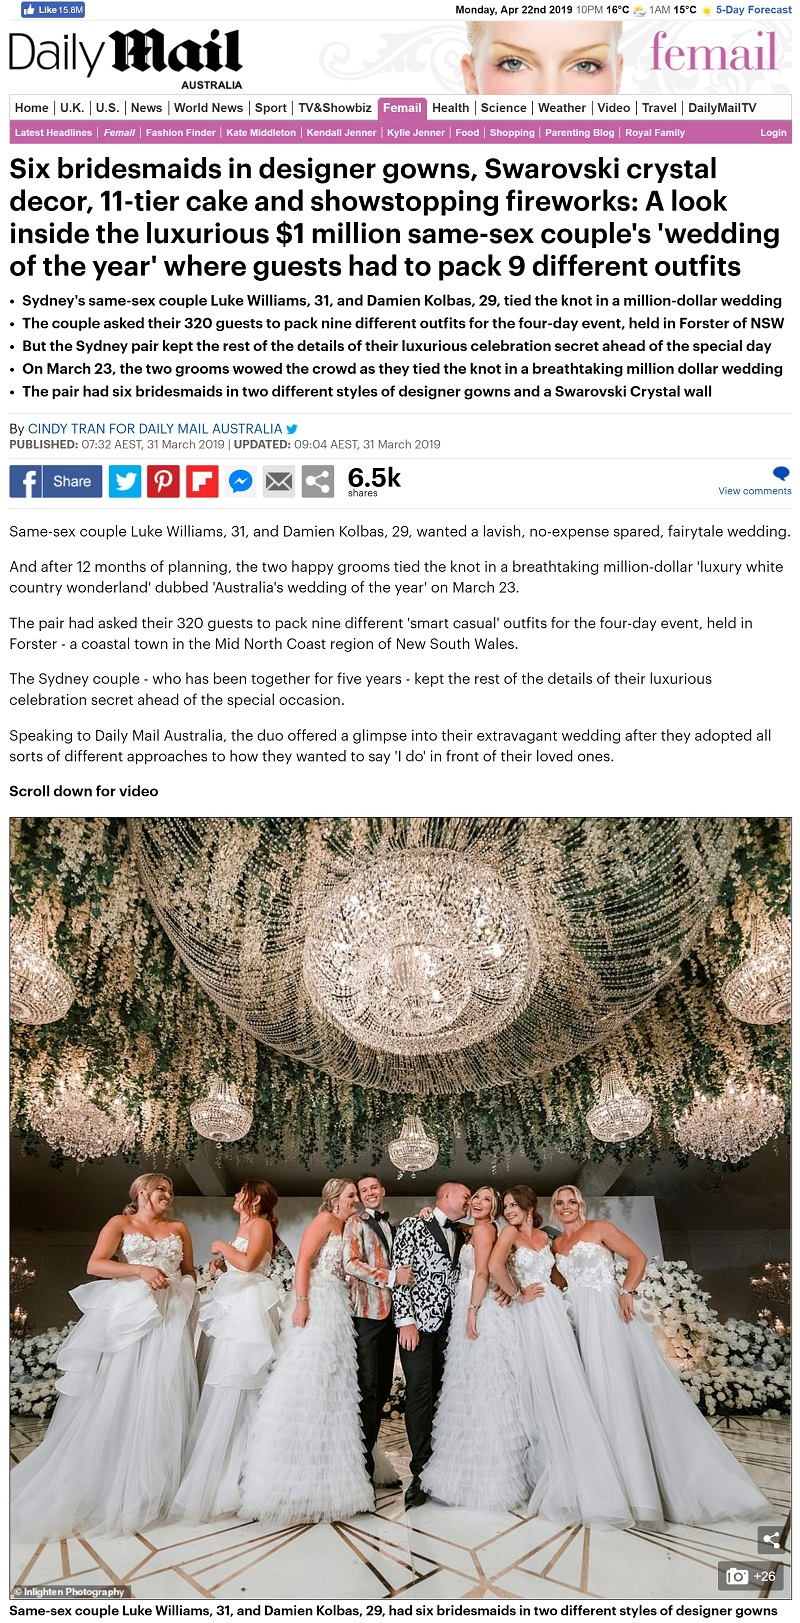 Daily Mail UK Million Dollar Wedding | LUK Event Design Management Planner